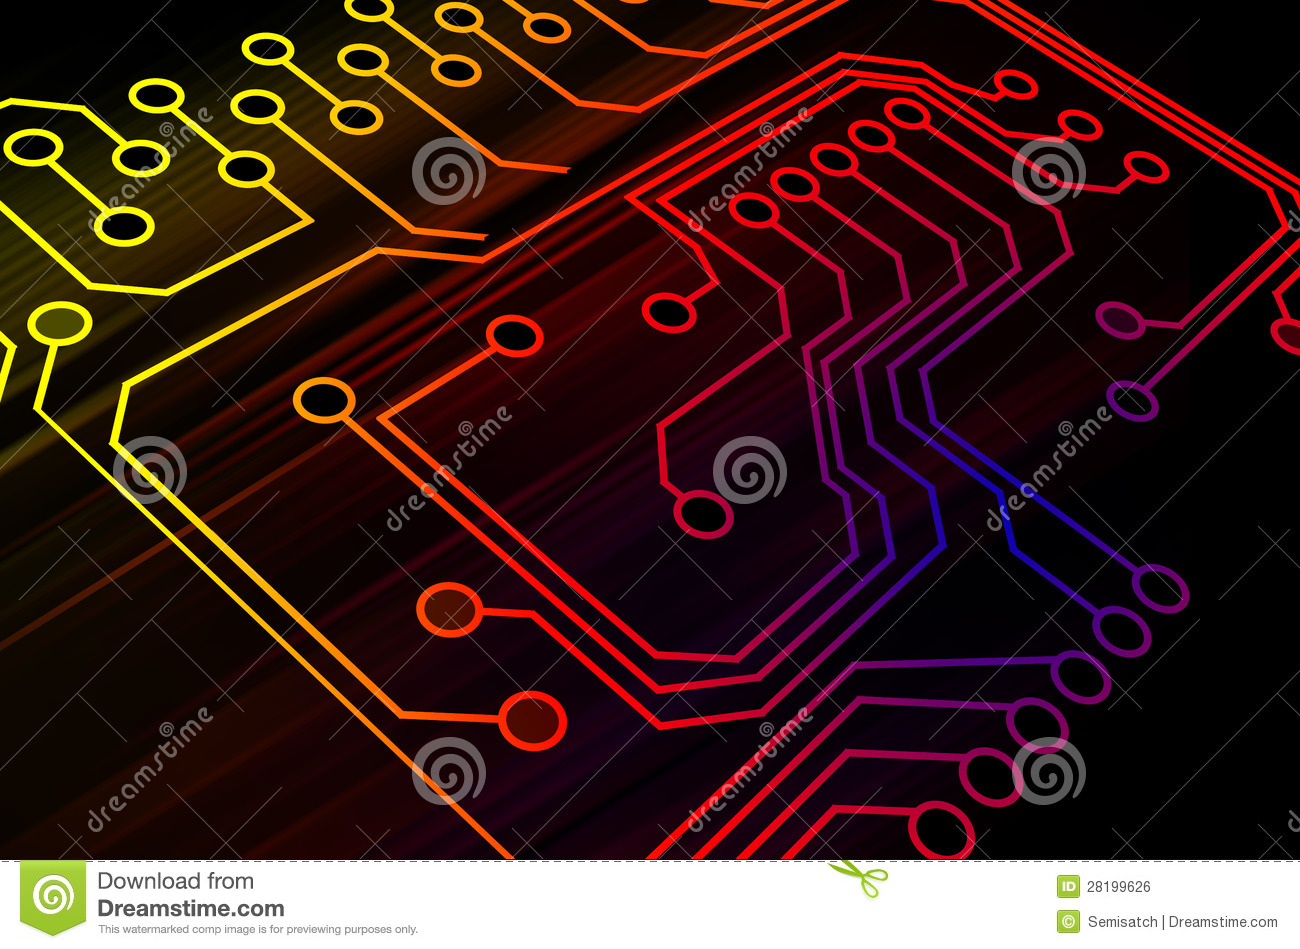 Microchip Background Royalty Free Stock Image - Image: 28199626